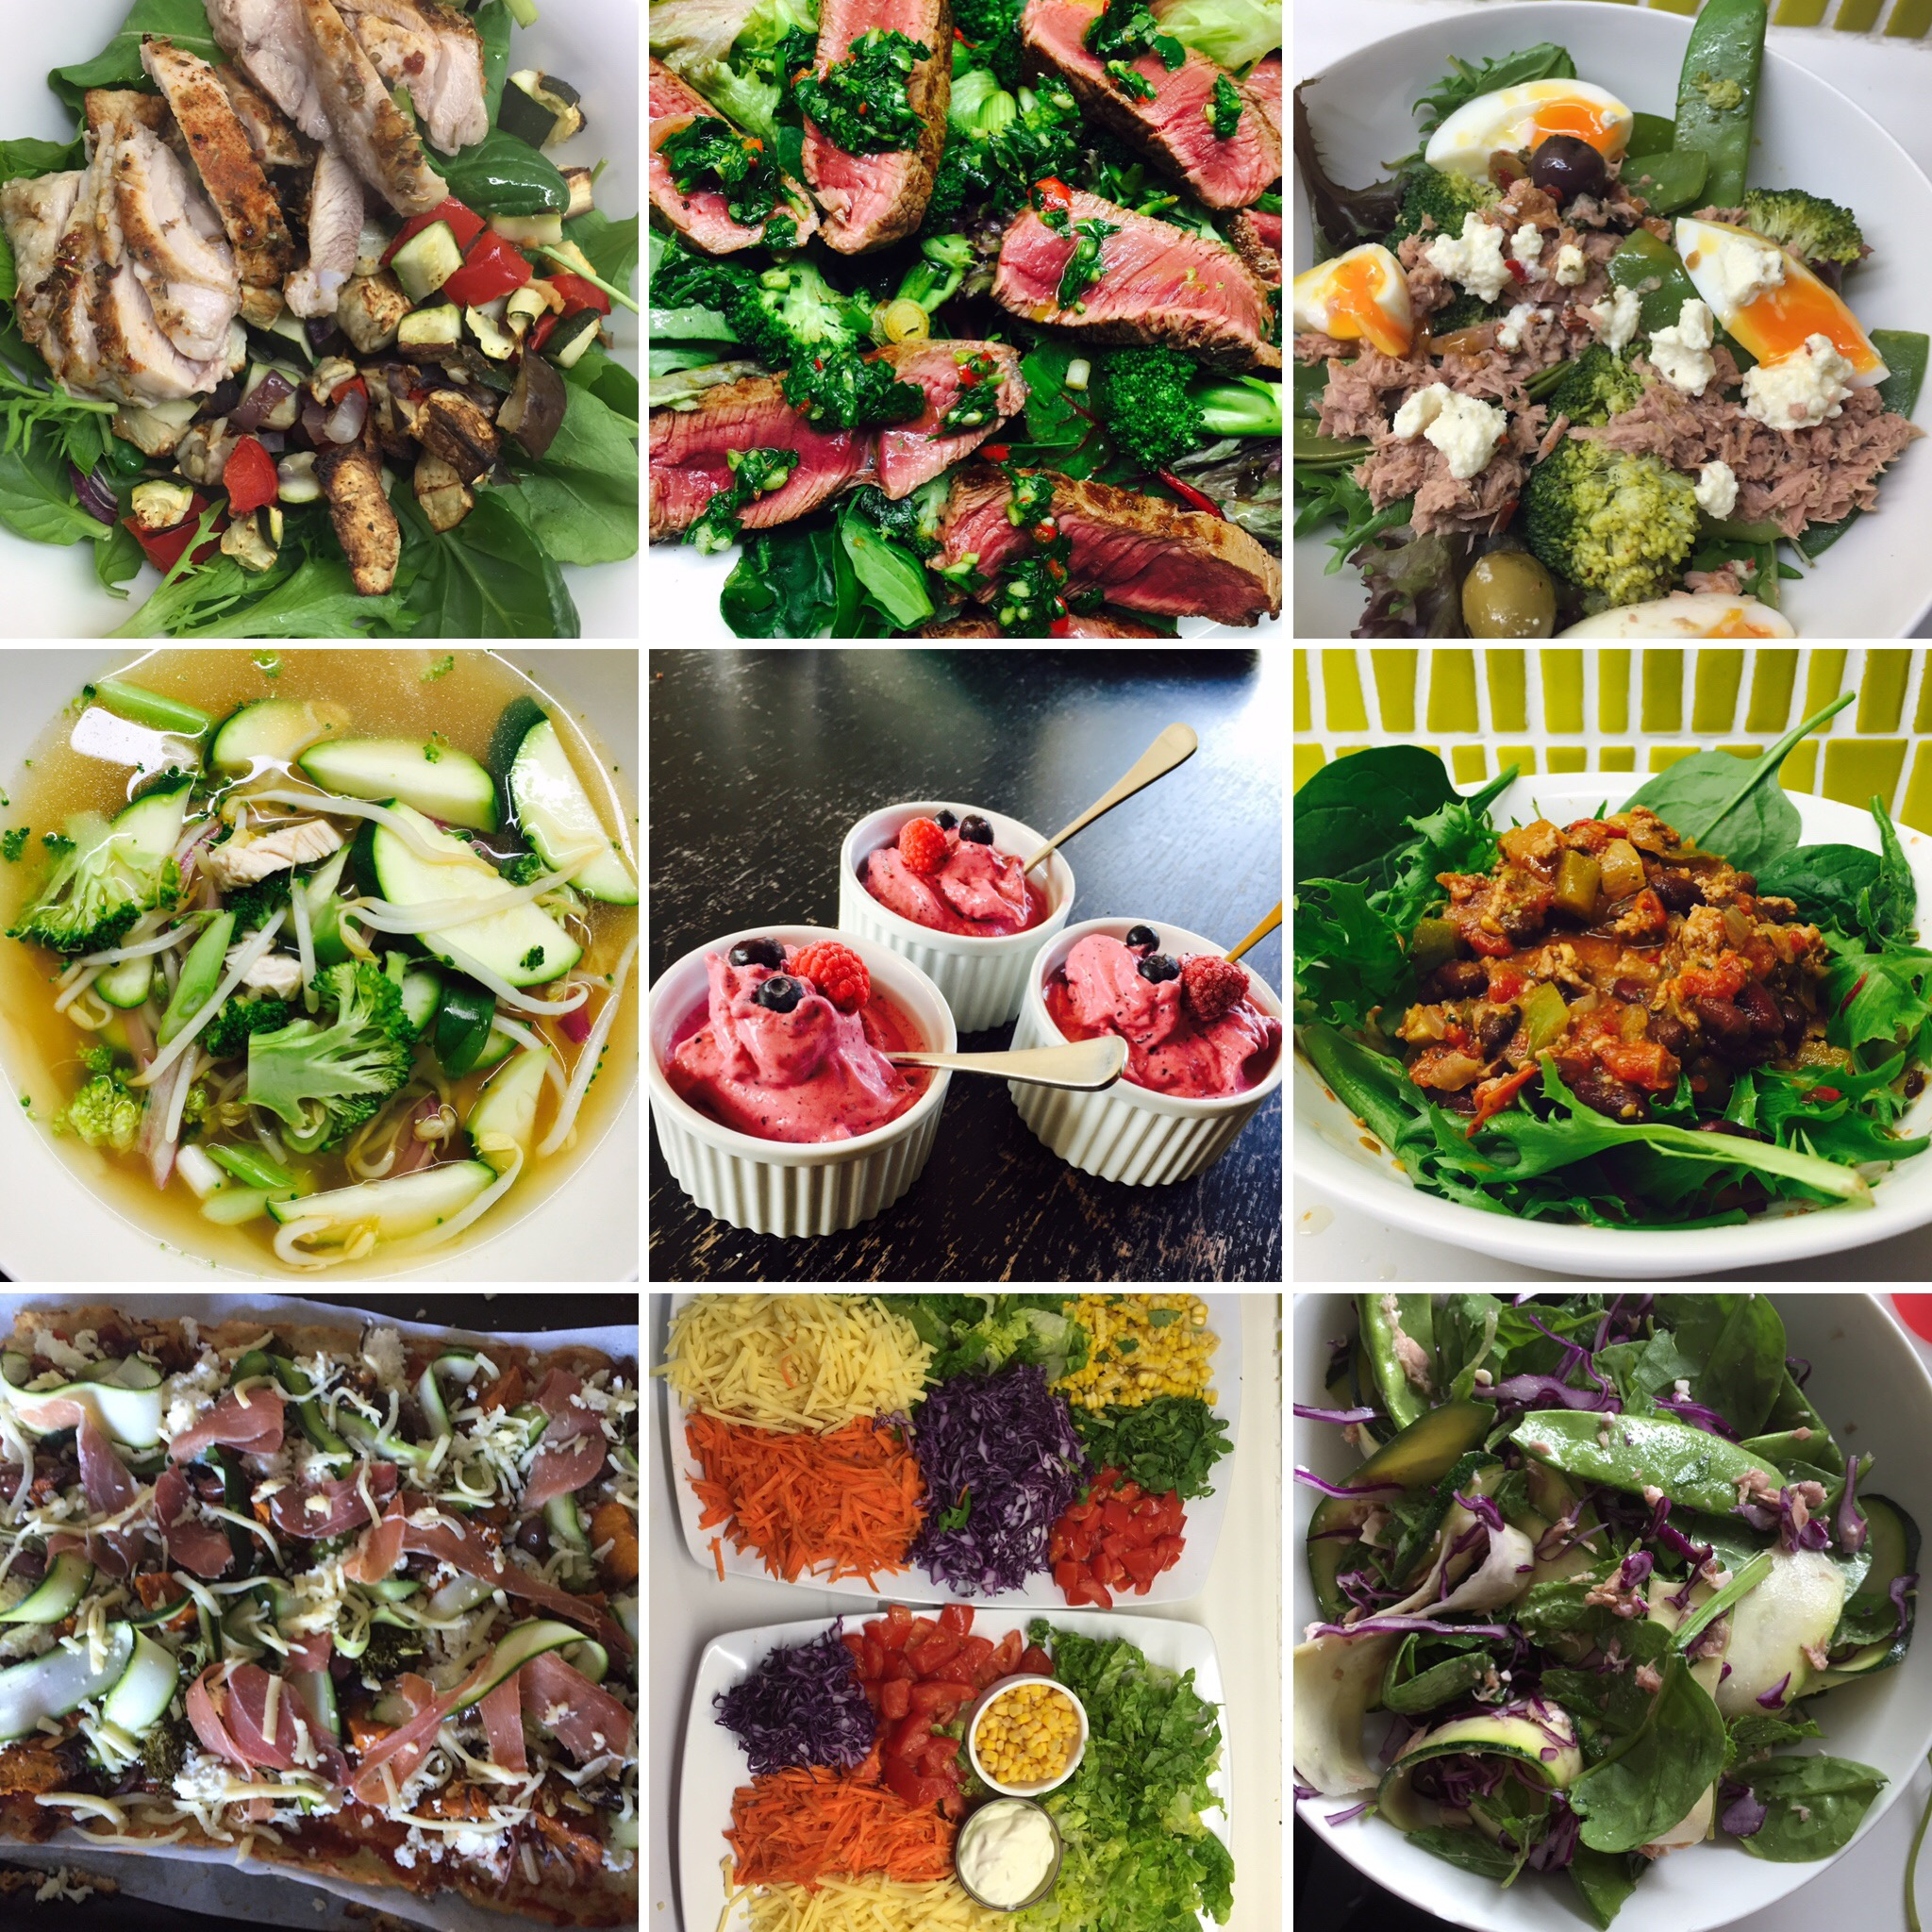 Weight loss; meal plans; healthy eating; protein supplements; recipes;